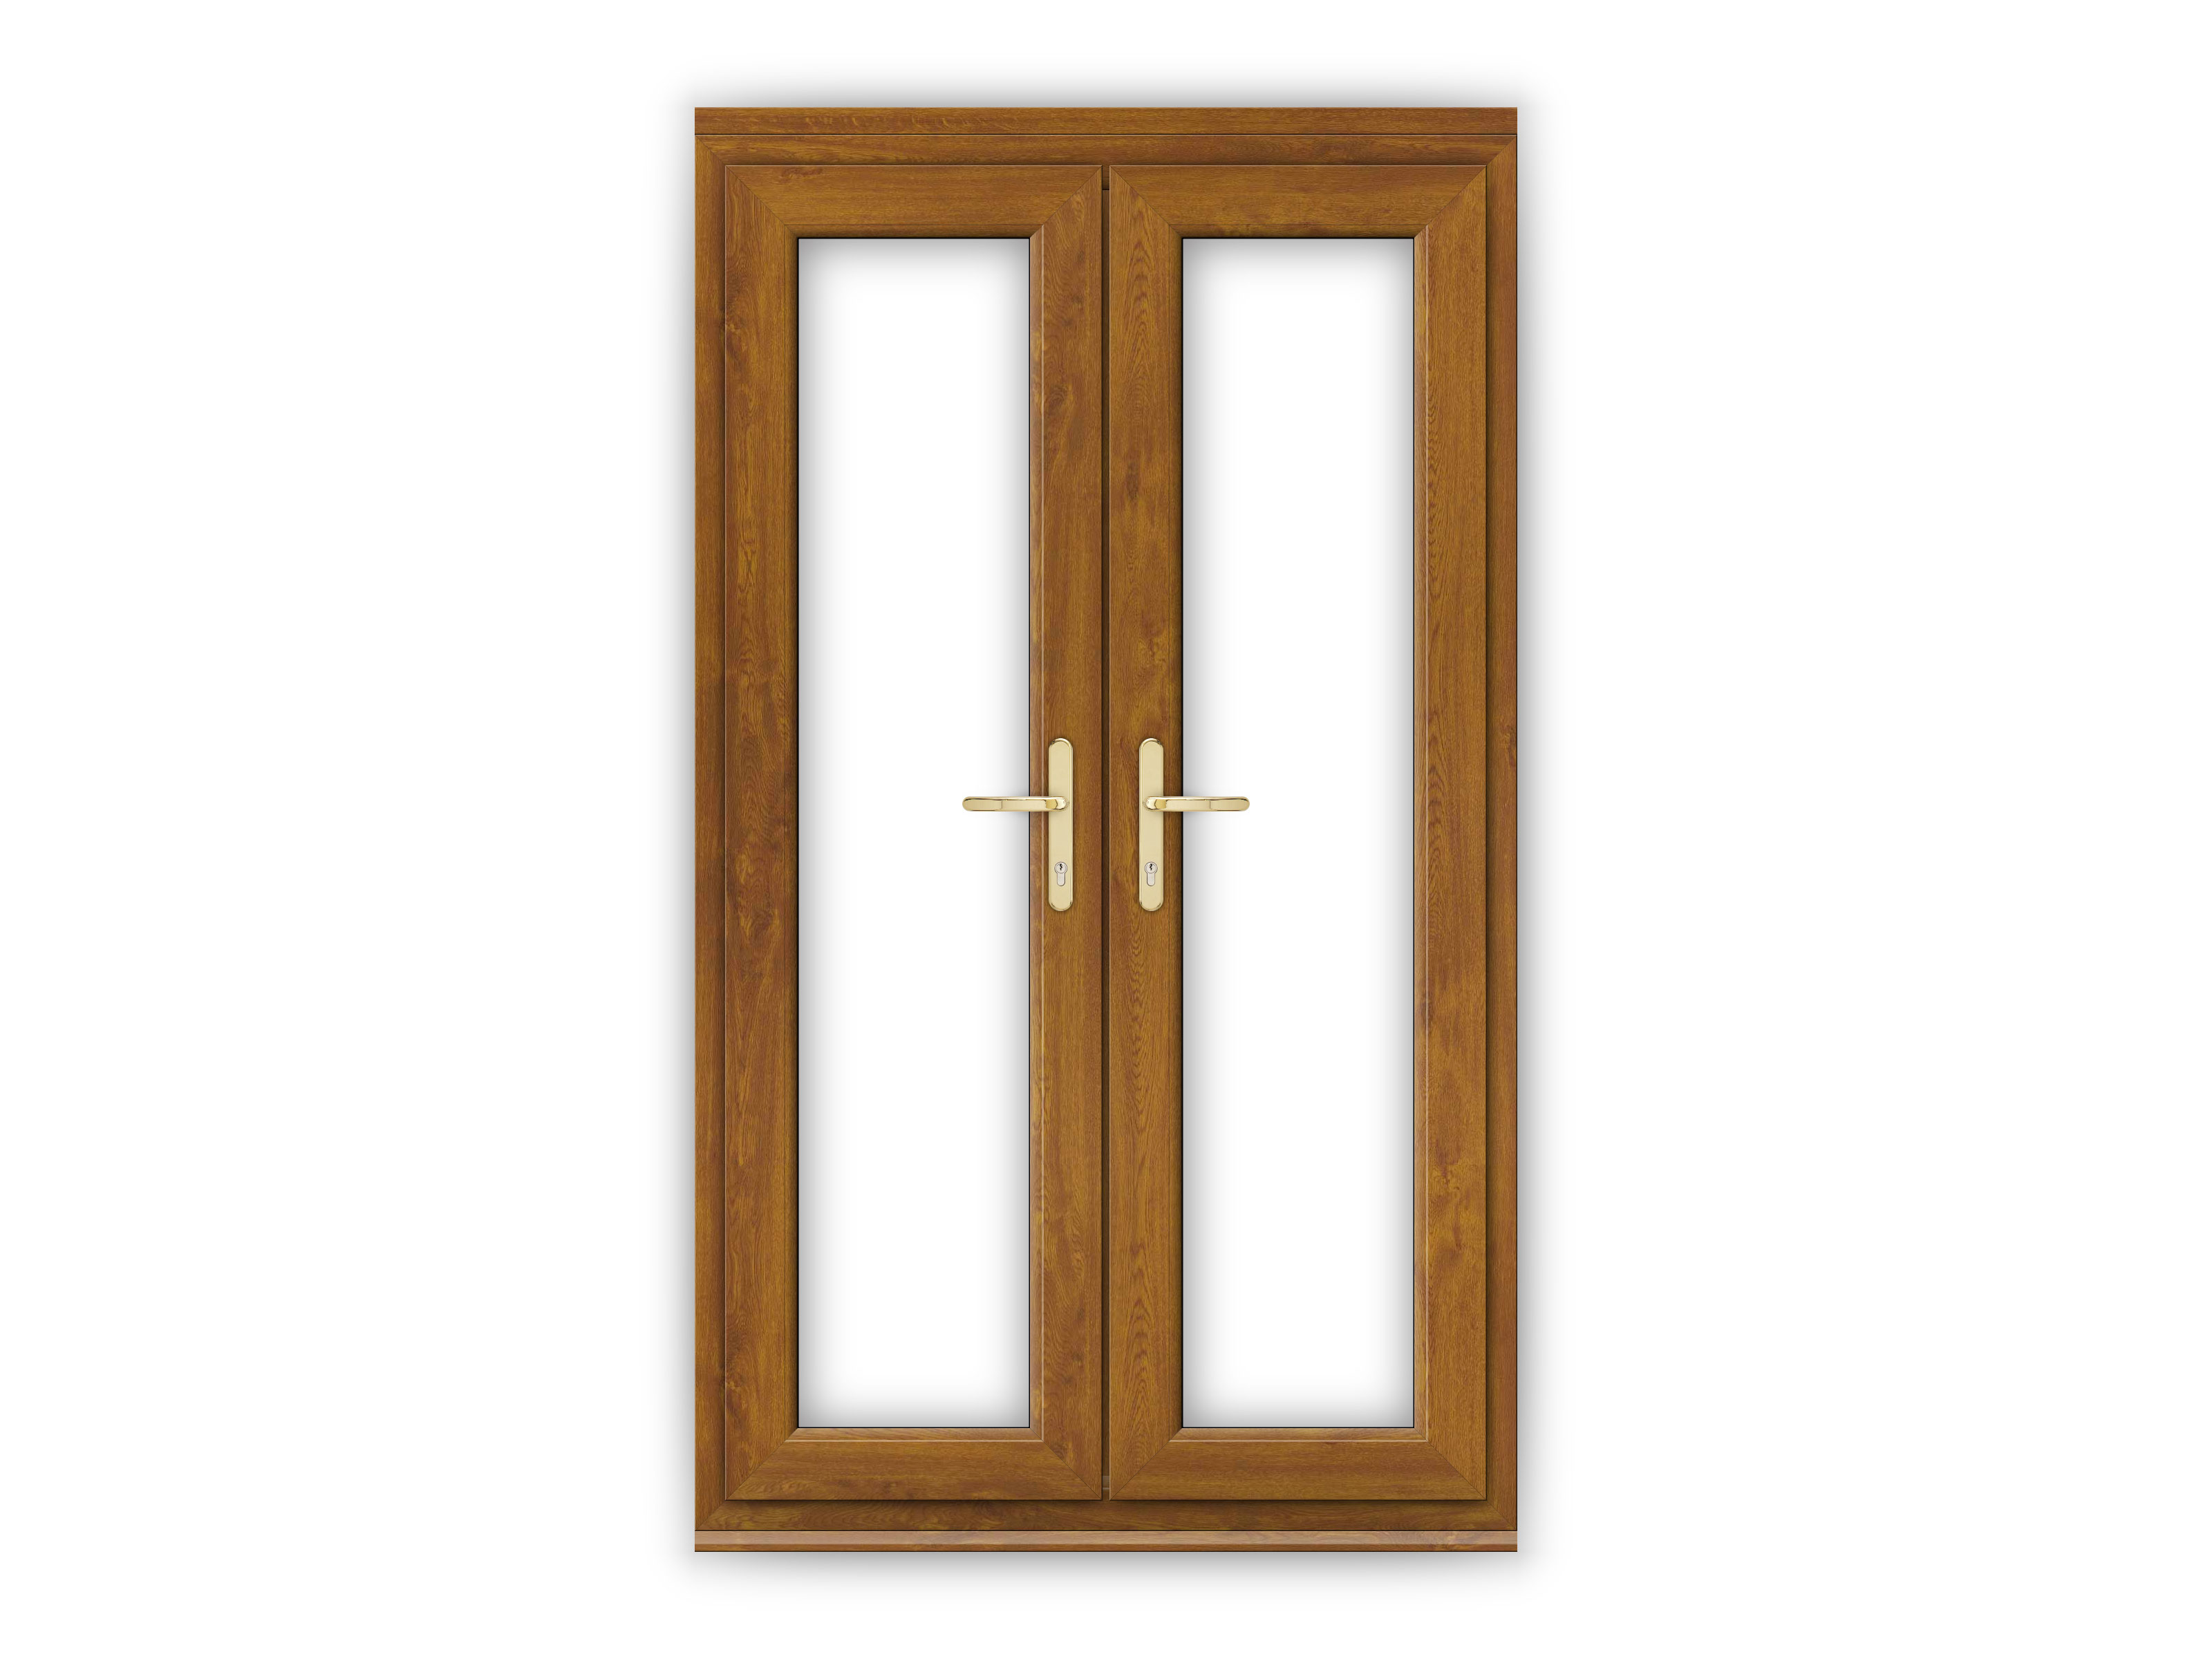 4ft Golden Oak uPVC French Doors